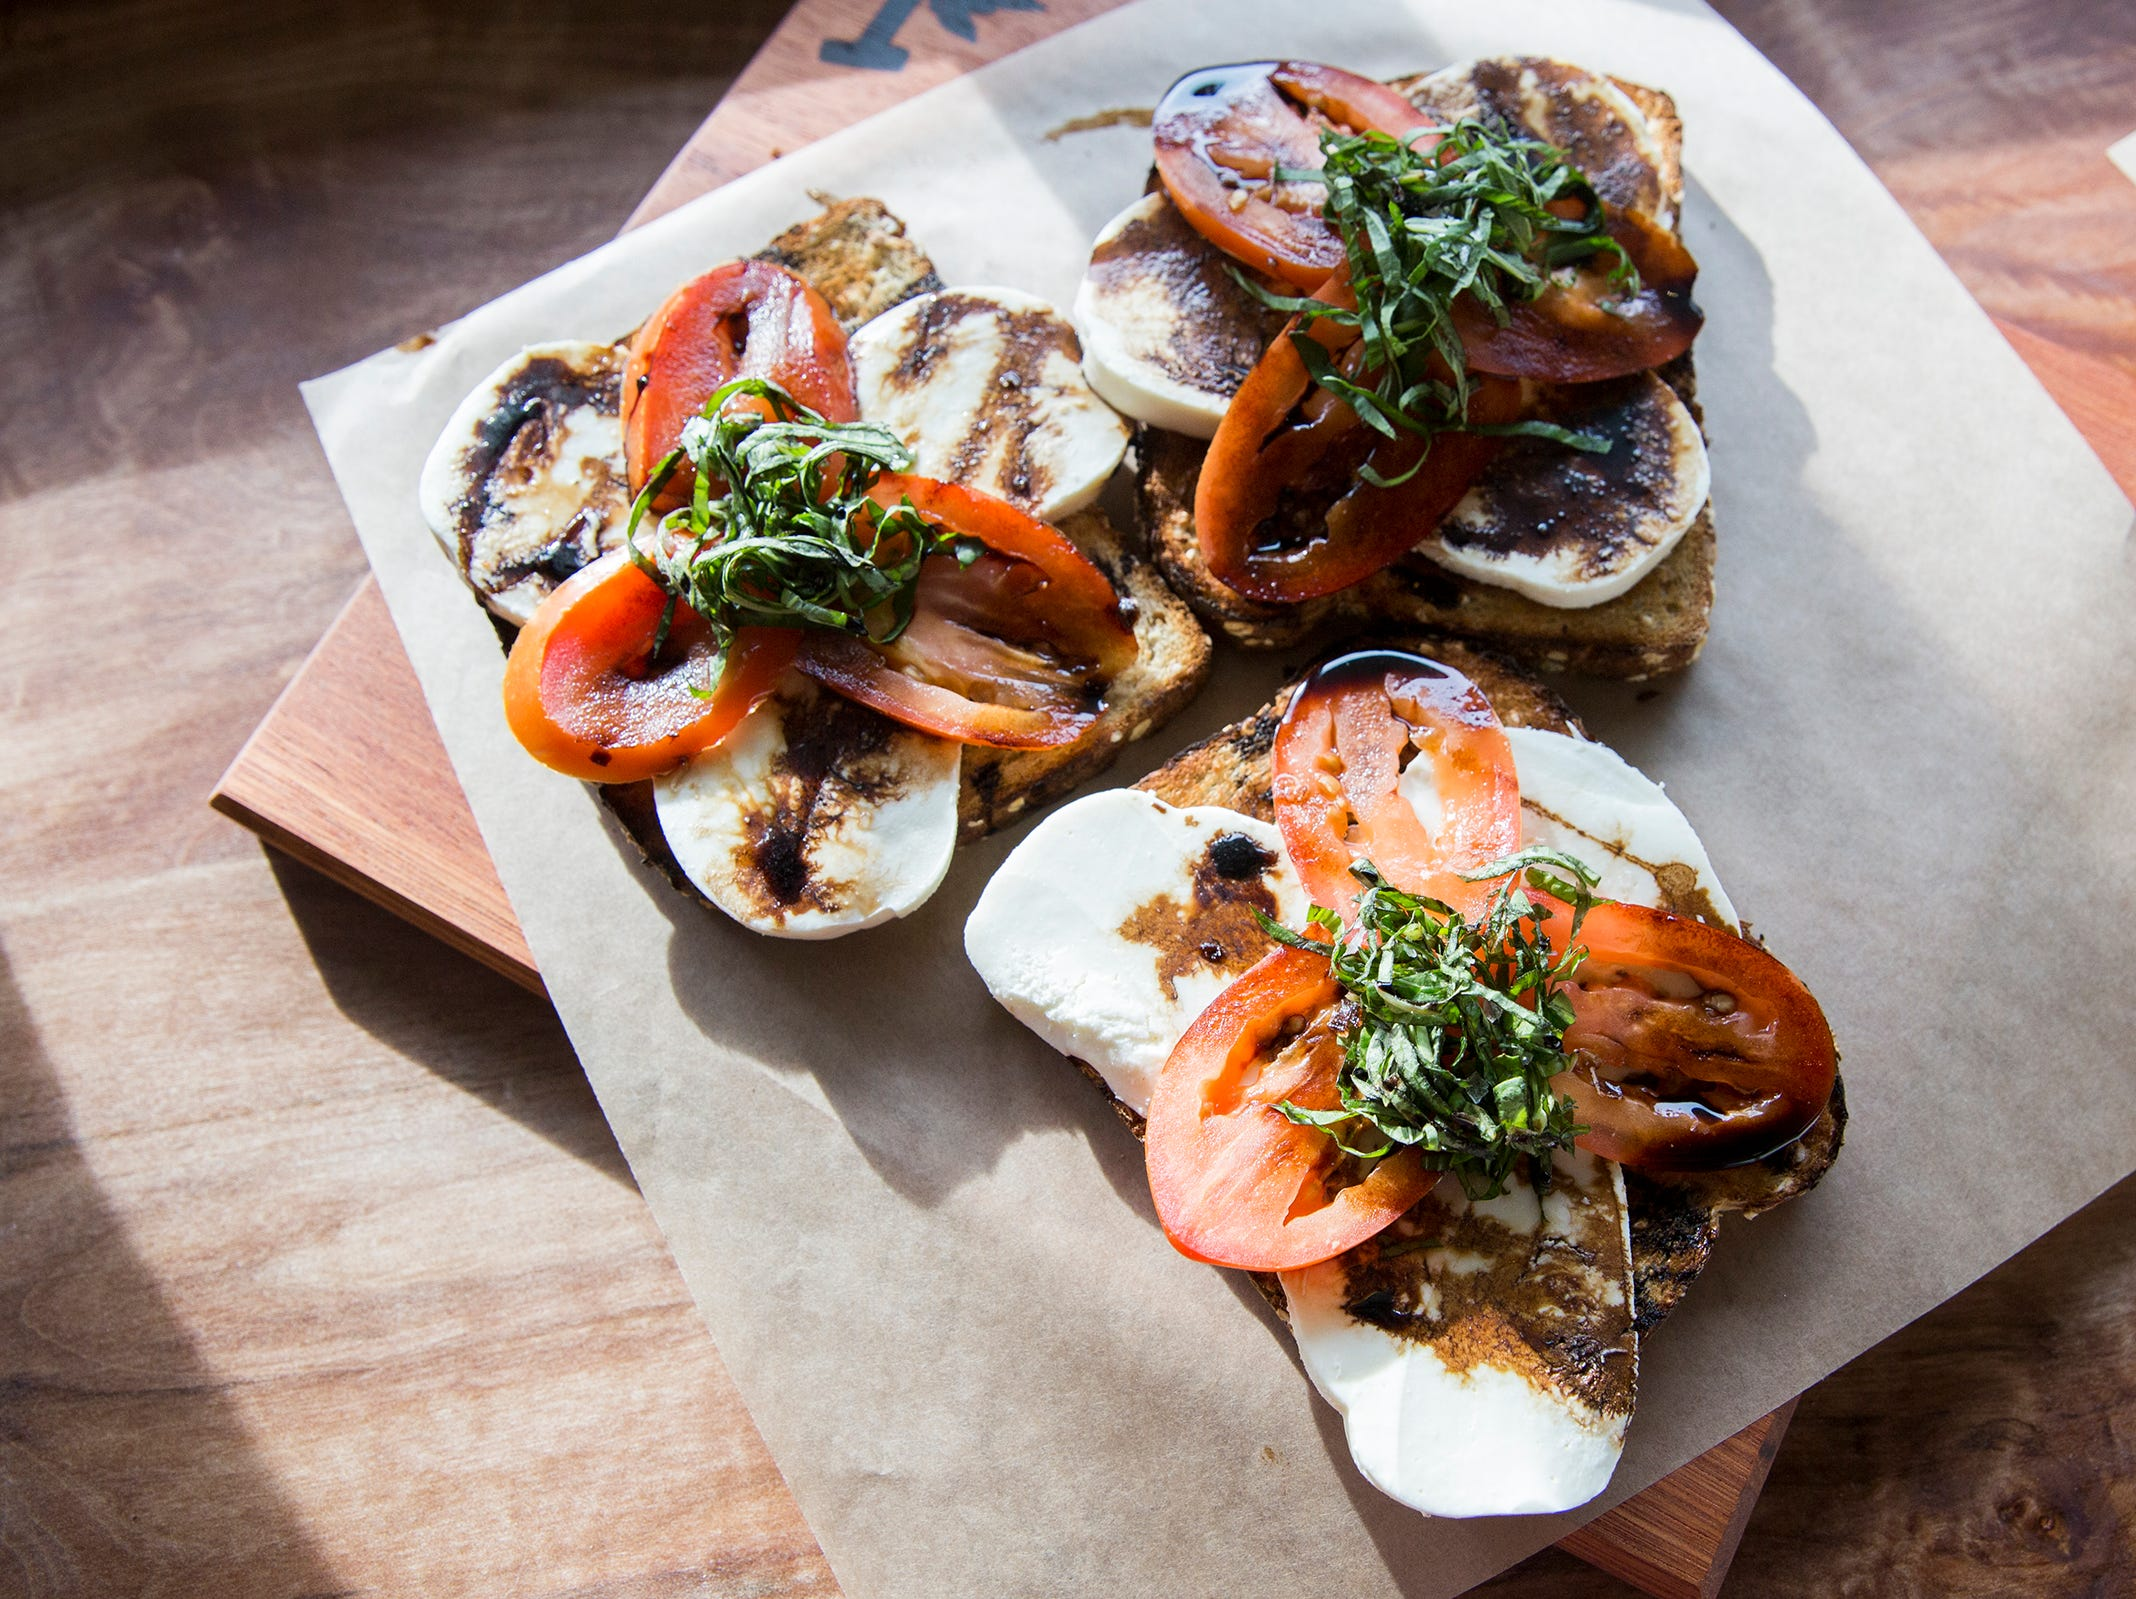 Toast with fresh mozzarella, tomato, basil, balsamic and sea salt is pictured at Isaac's Downtown in downtown Salem on Thursday, Jan. 3, 2019. The menu item is called Verona.